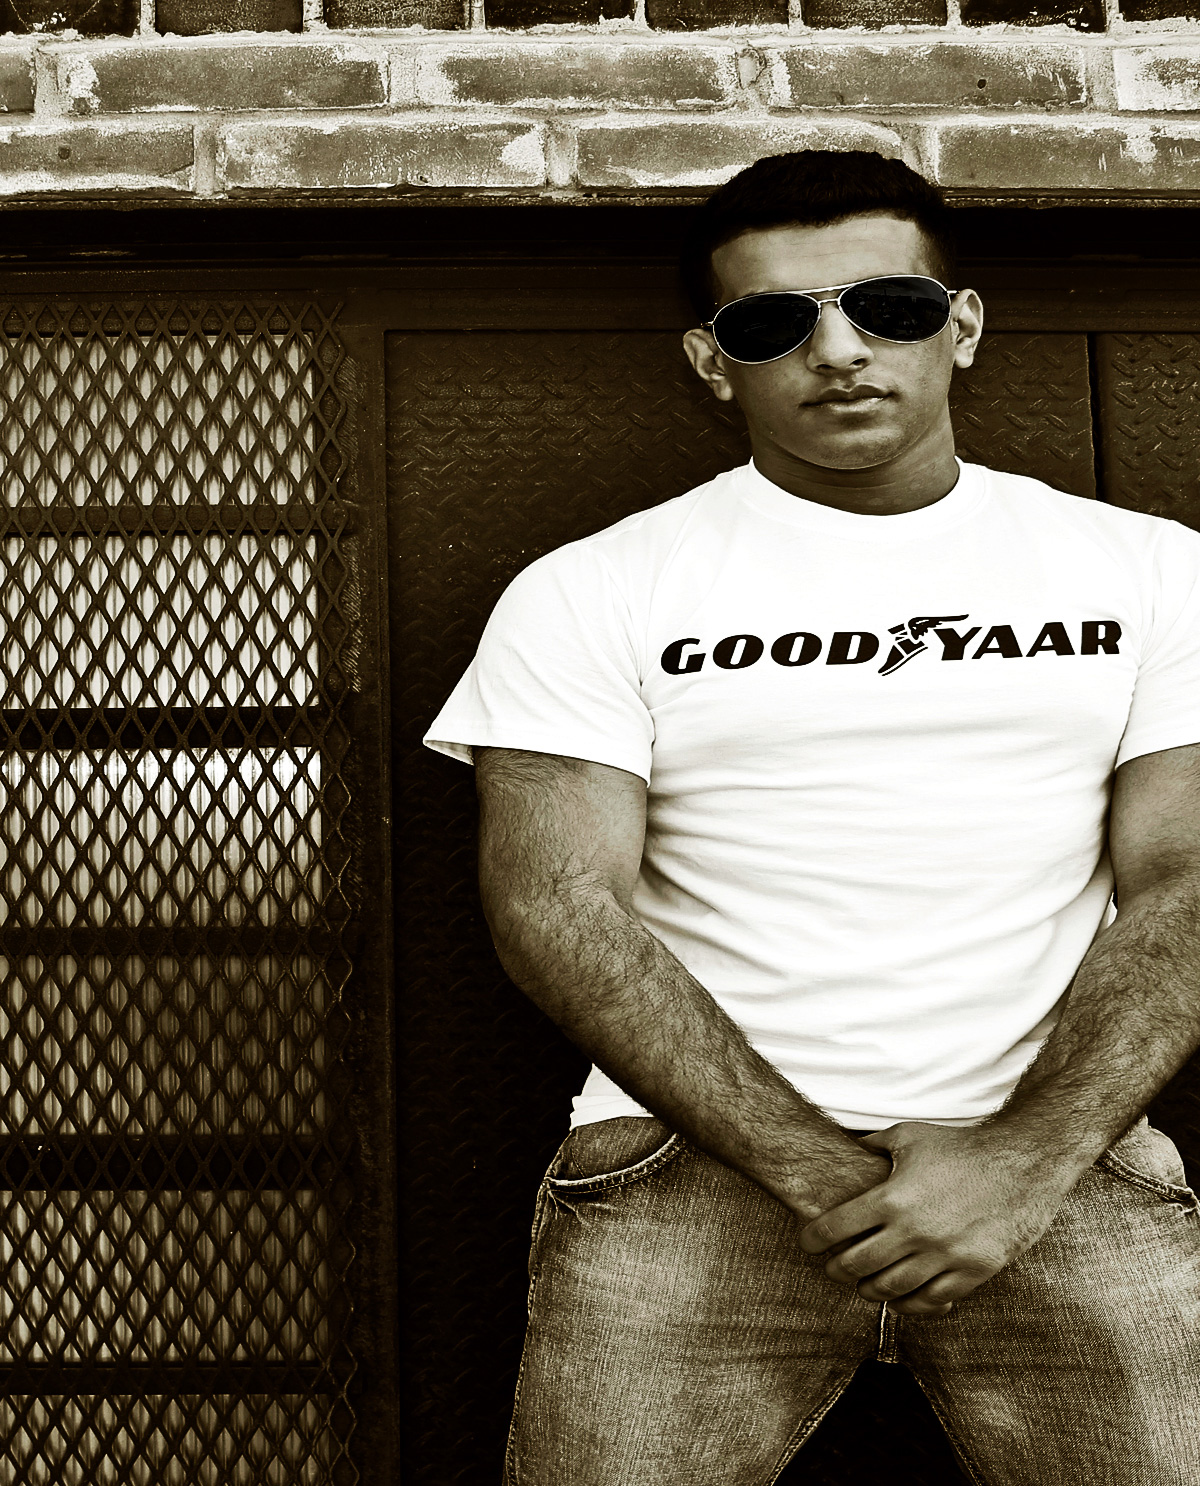 South Asian male model wearing white t.shirt with Graphic Design letter on front that says Good Yaar.  South Asian Desi Themed Graphic Design t.shirts by Brown Man Clothing Co.